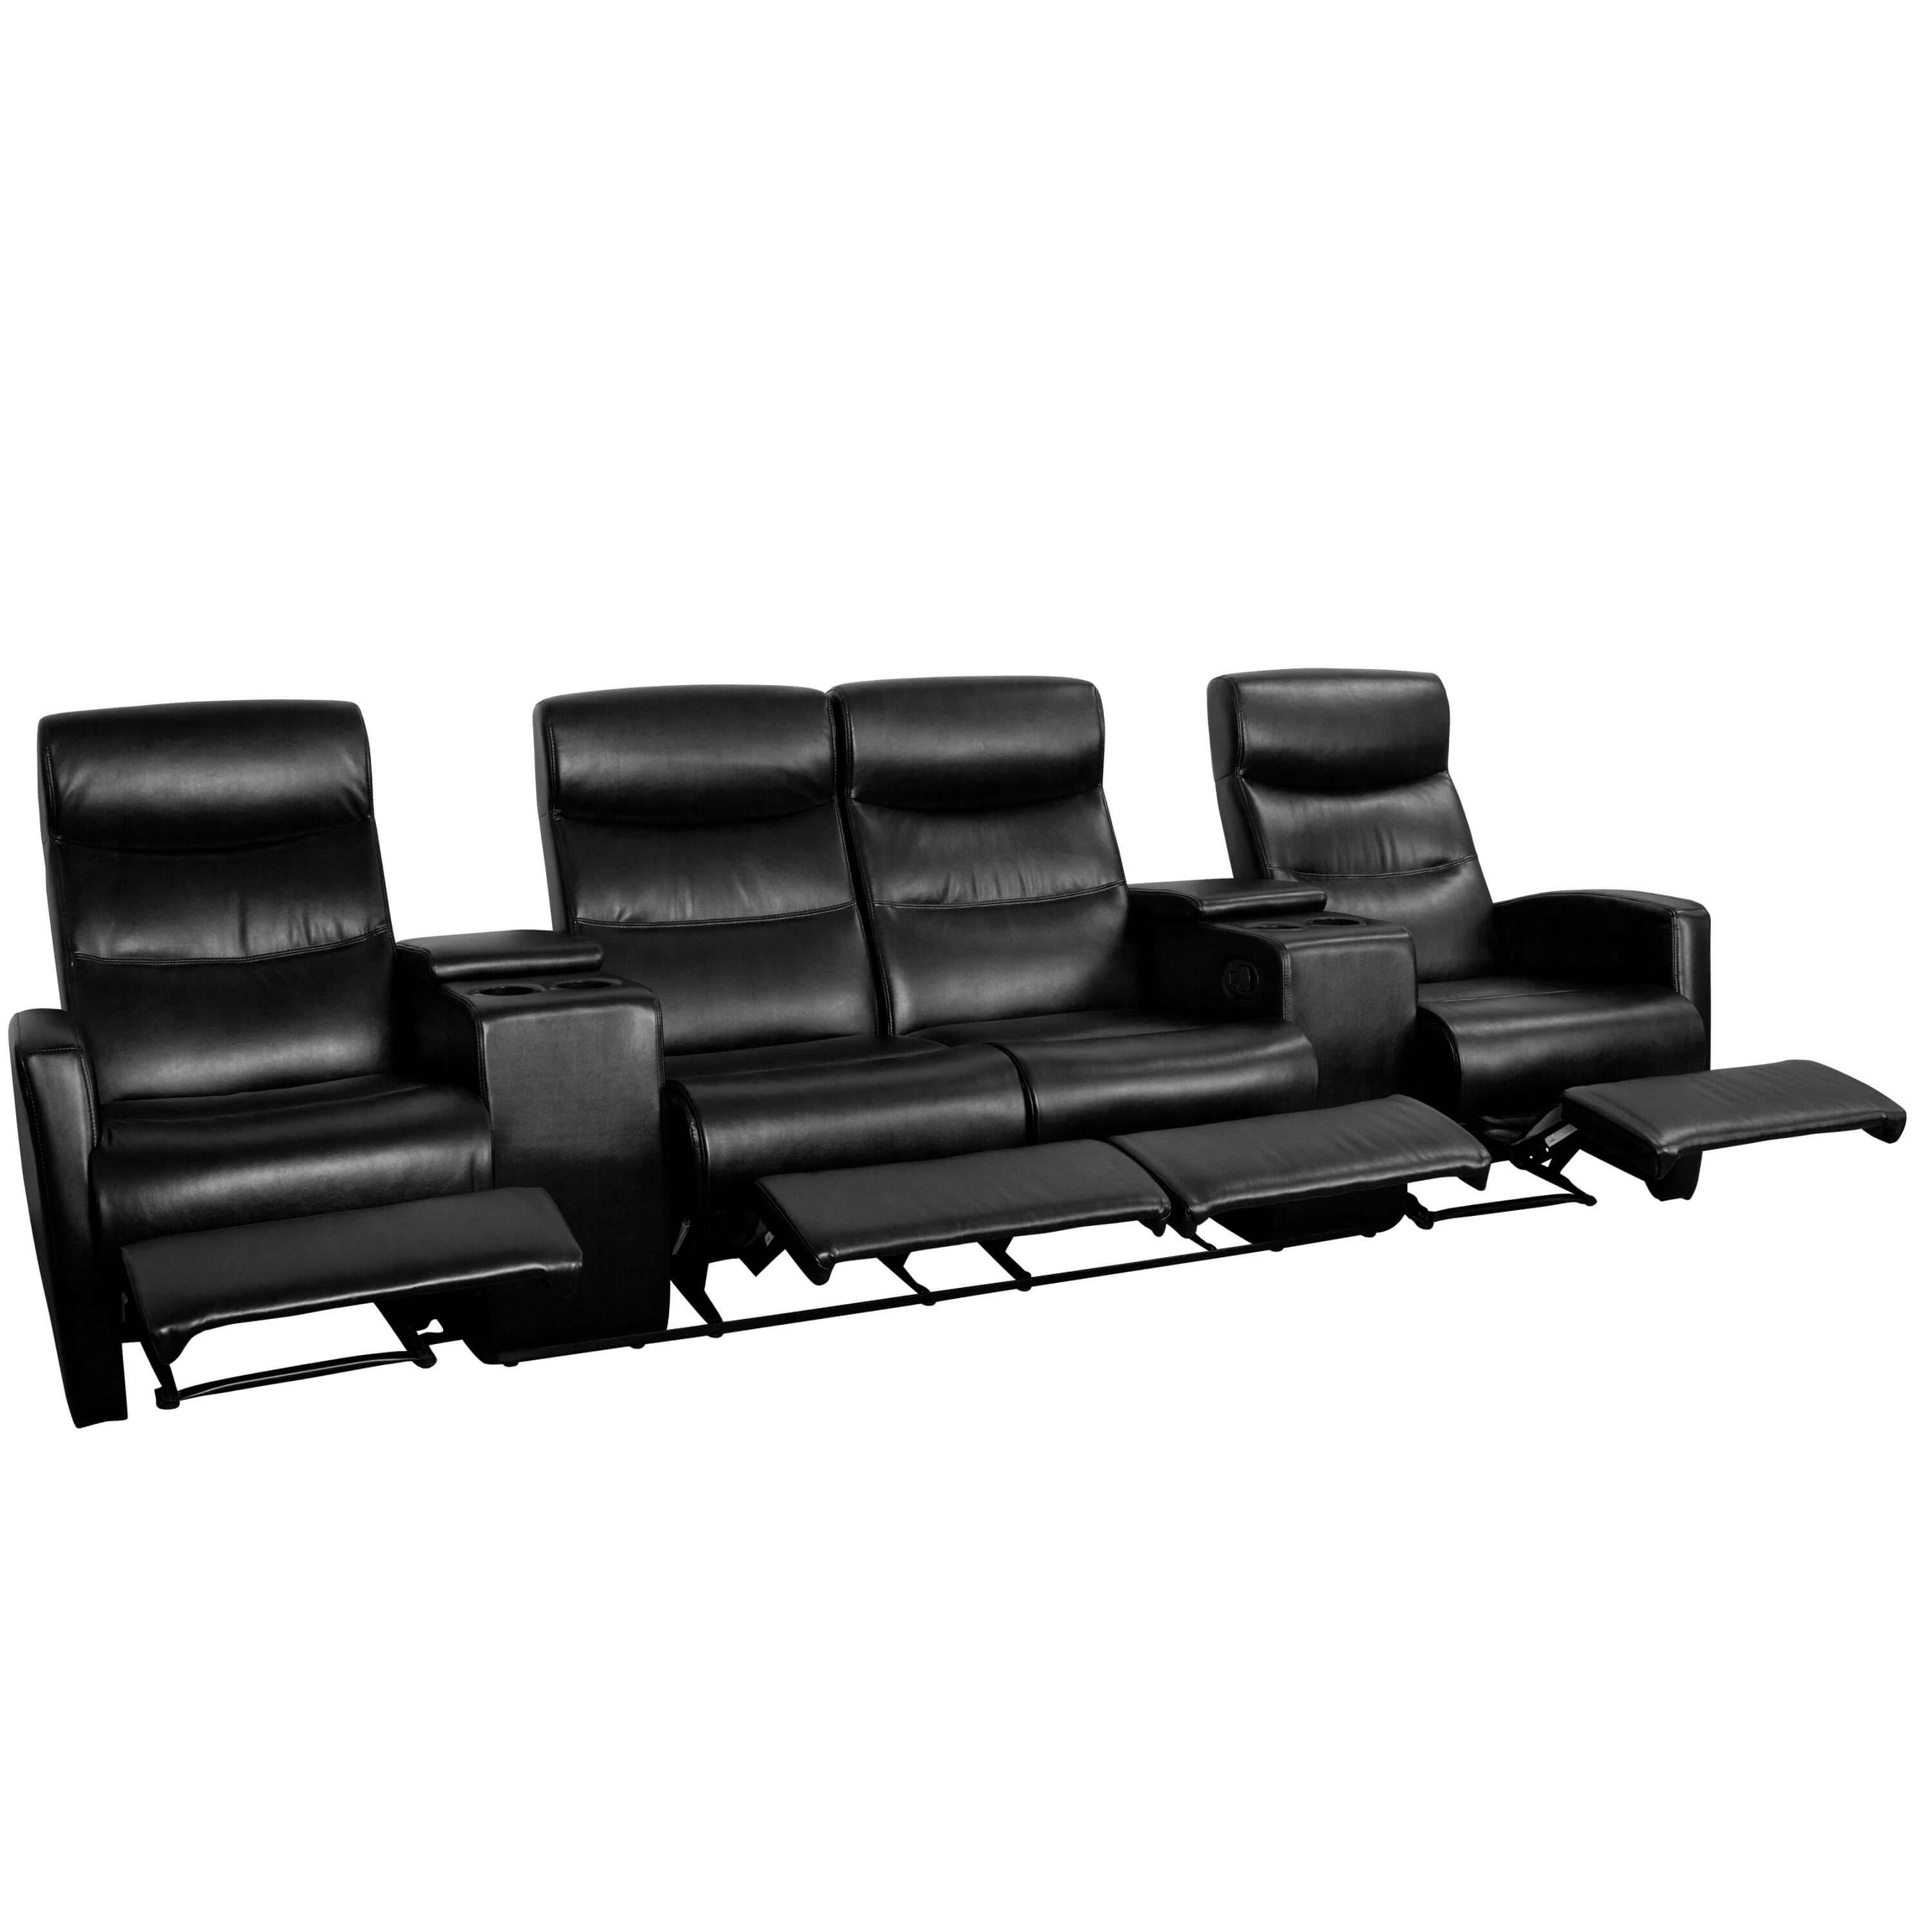 4 seater recliner sofa bunk beds with underneath hayworth